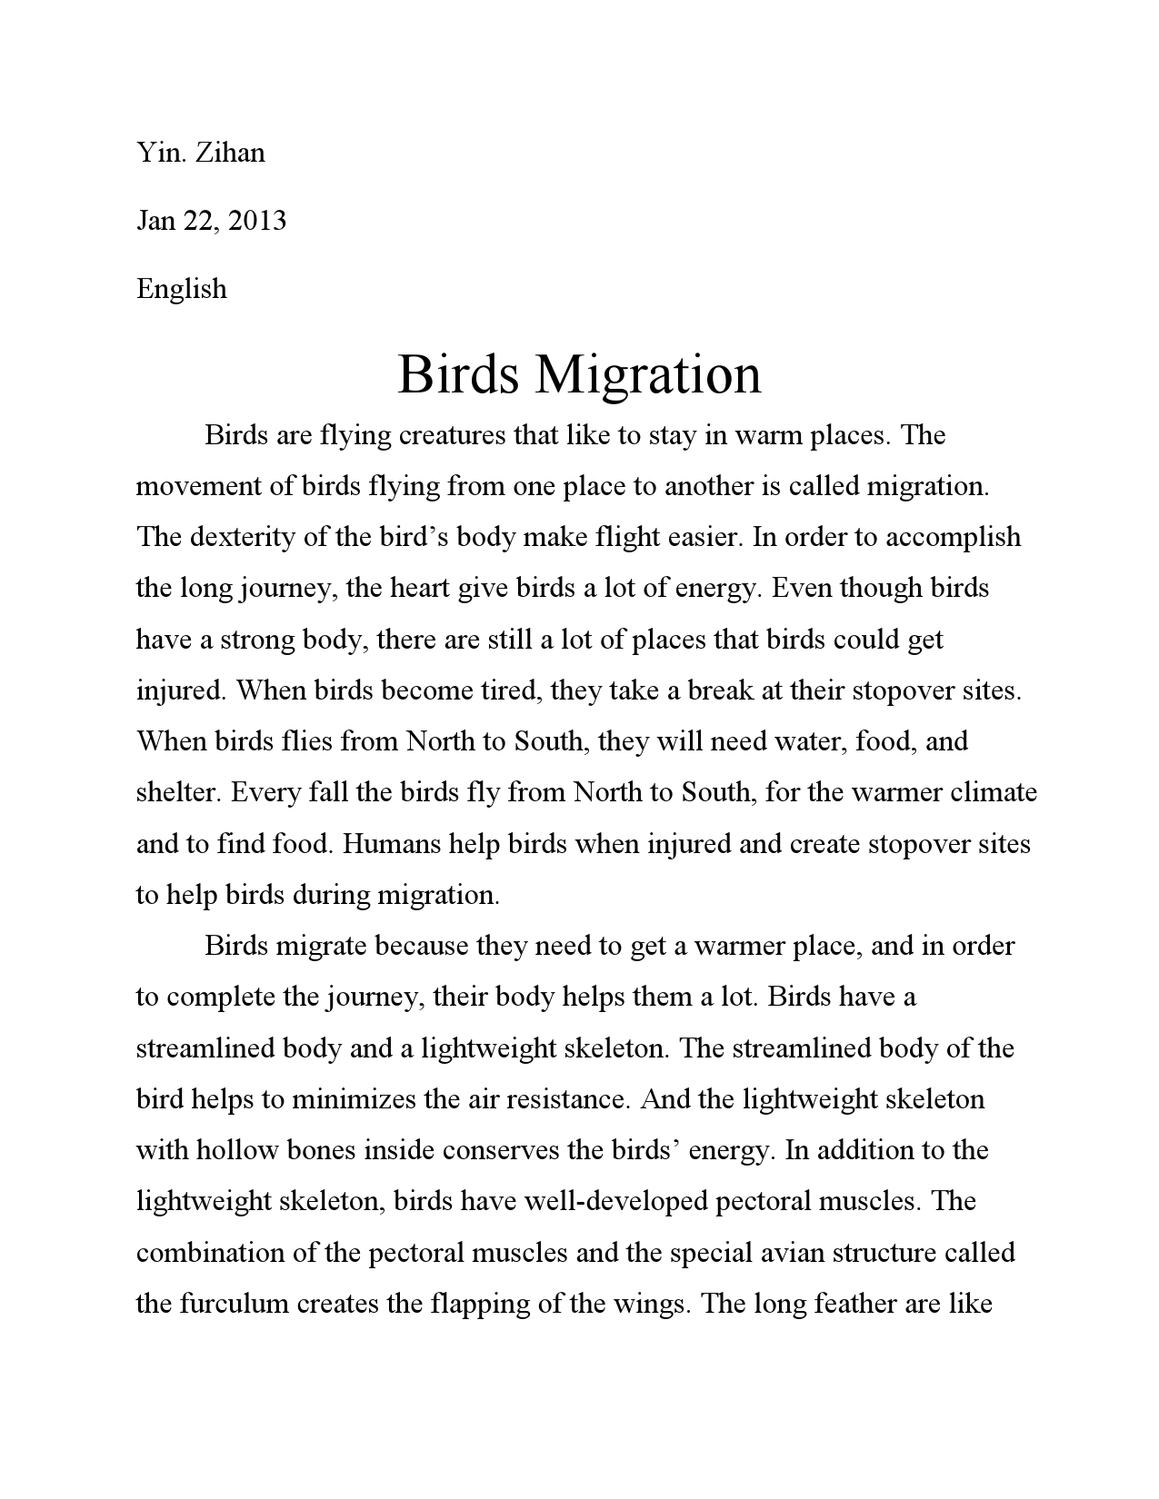 004 Essay On Birds Page 1 Incredible Nest In Telugu Kannada And Animals Full